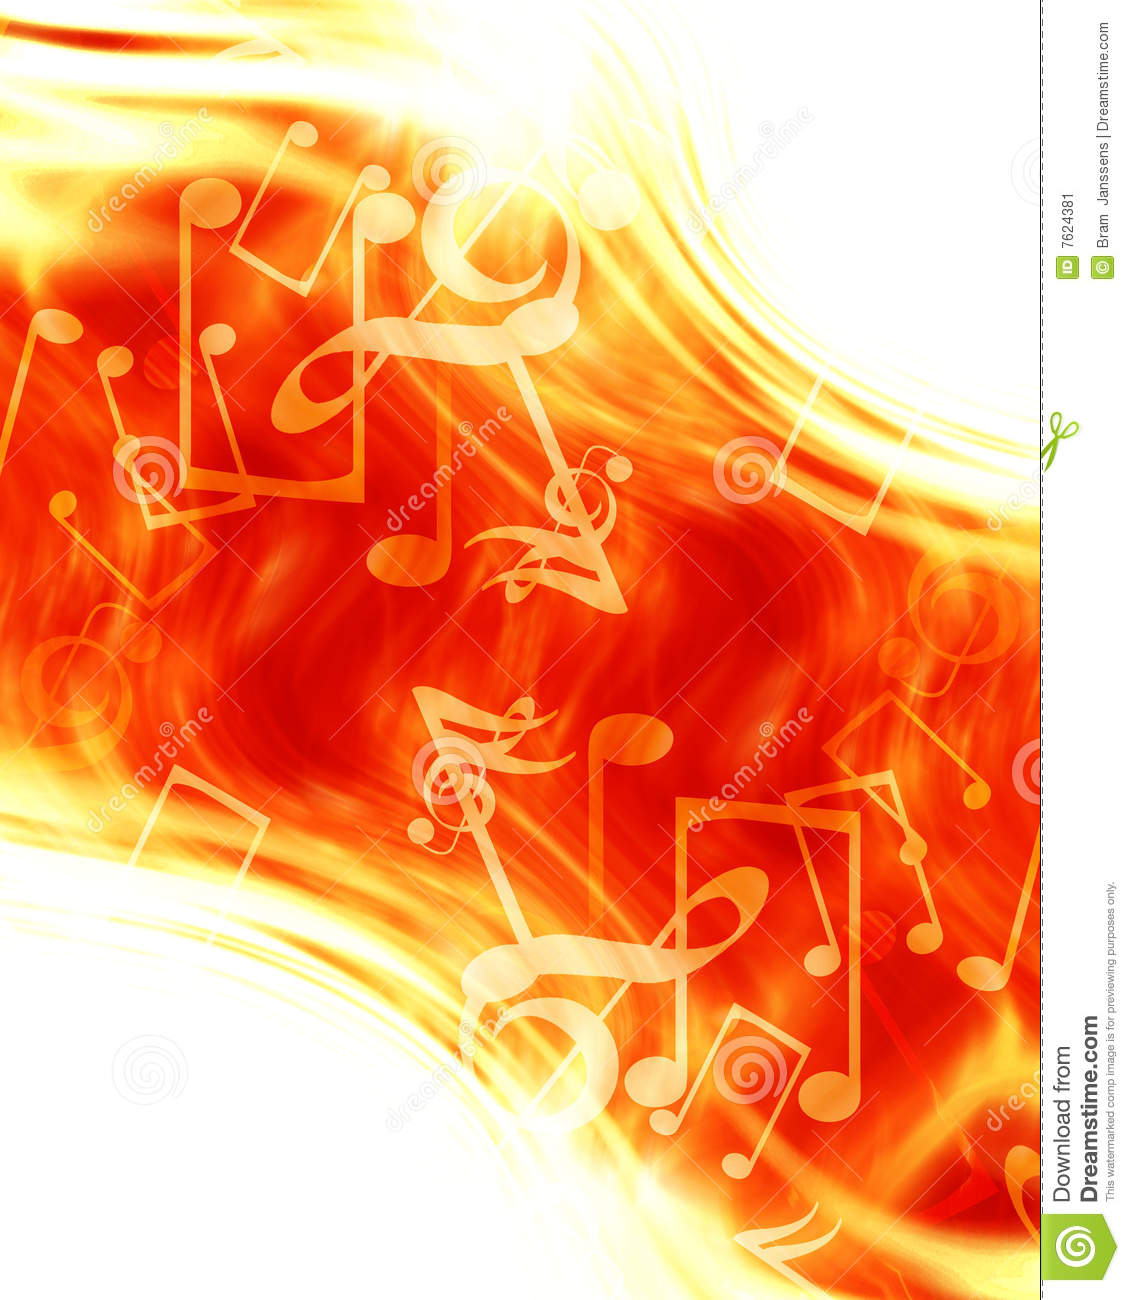 Image Result For Royalty Free Music Notes